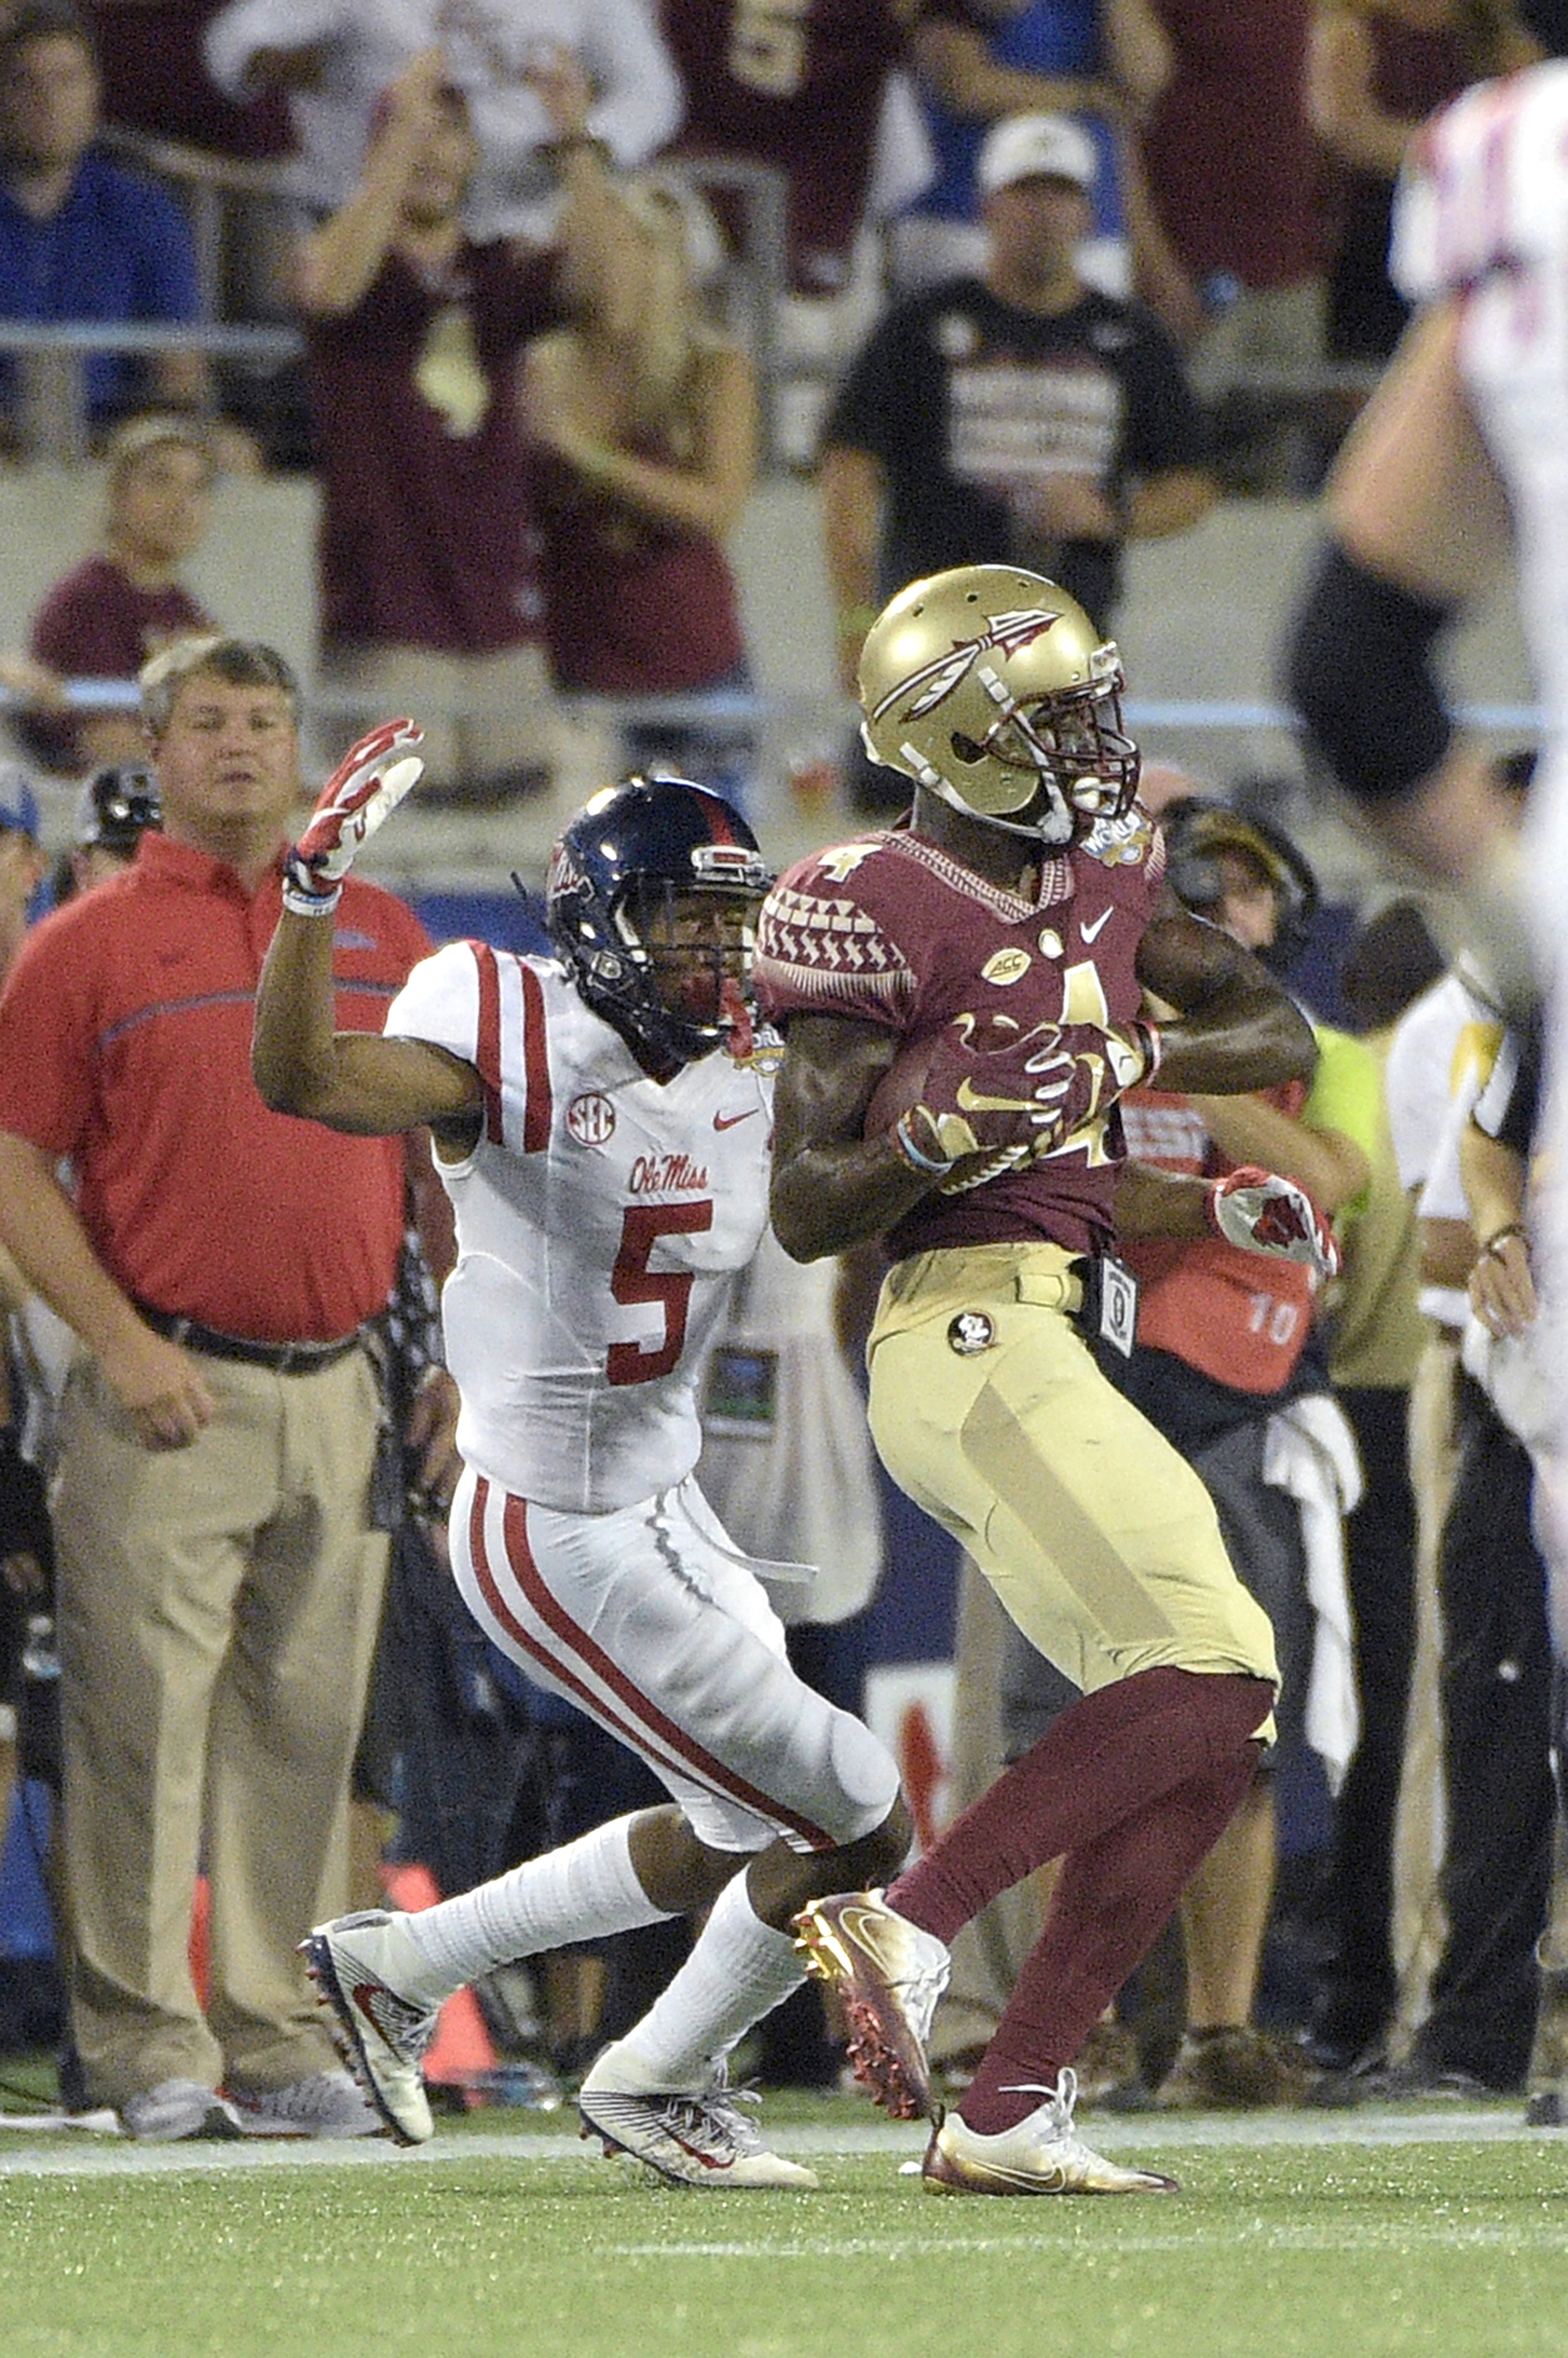 FILE- In this Sept. 6, 2016, file photo, Florida State defensive back Tarvarus McFadden (4) intercepts a pass intended for Mississippi wide receiver DaMarkus Lodge (5) during the second half of an NCAA college football game in Orlando. McFadden, who had a